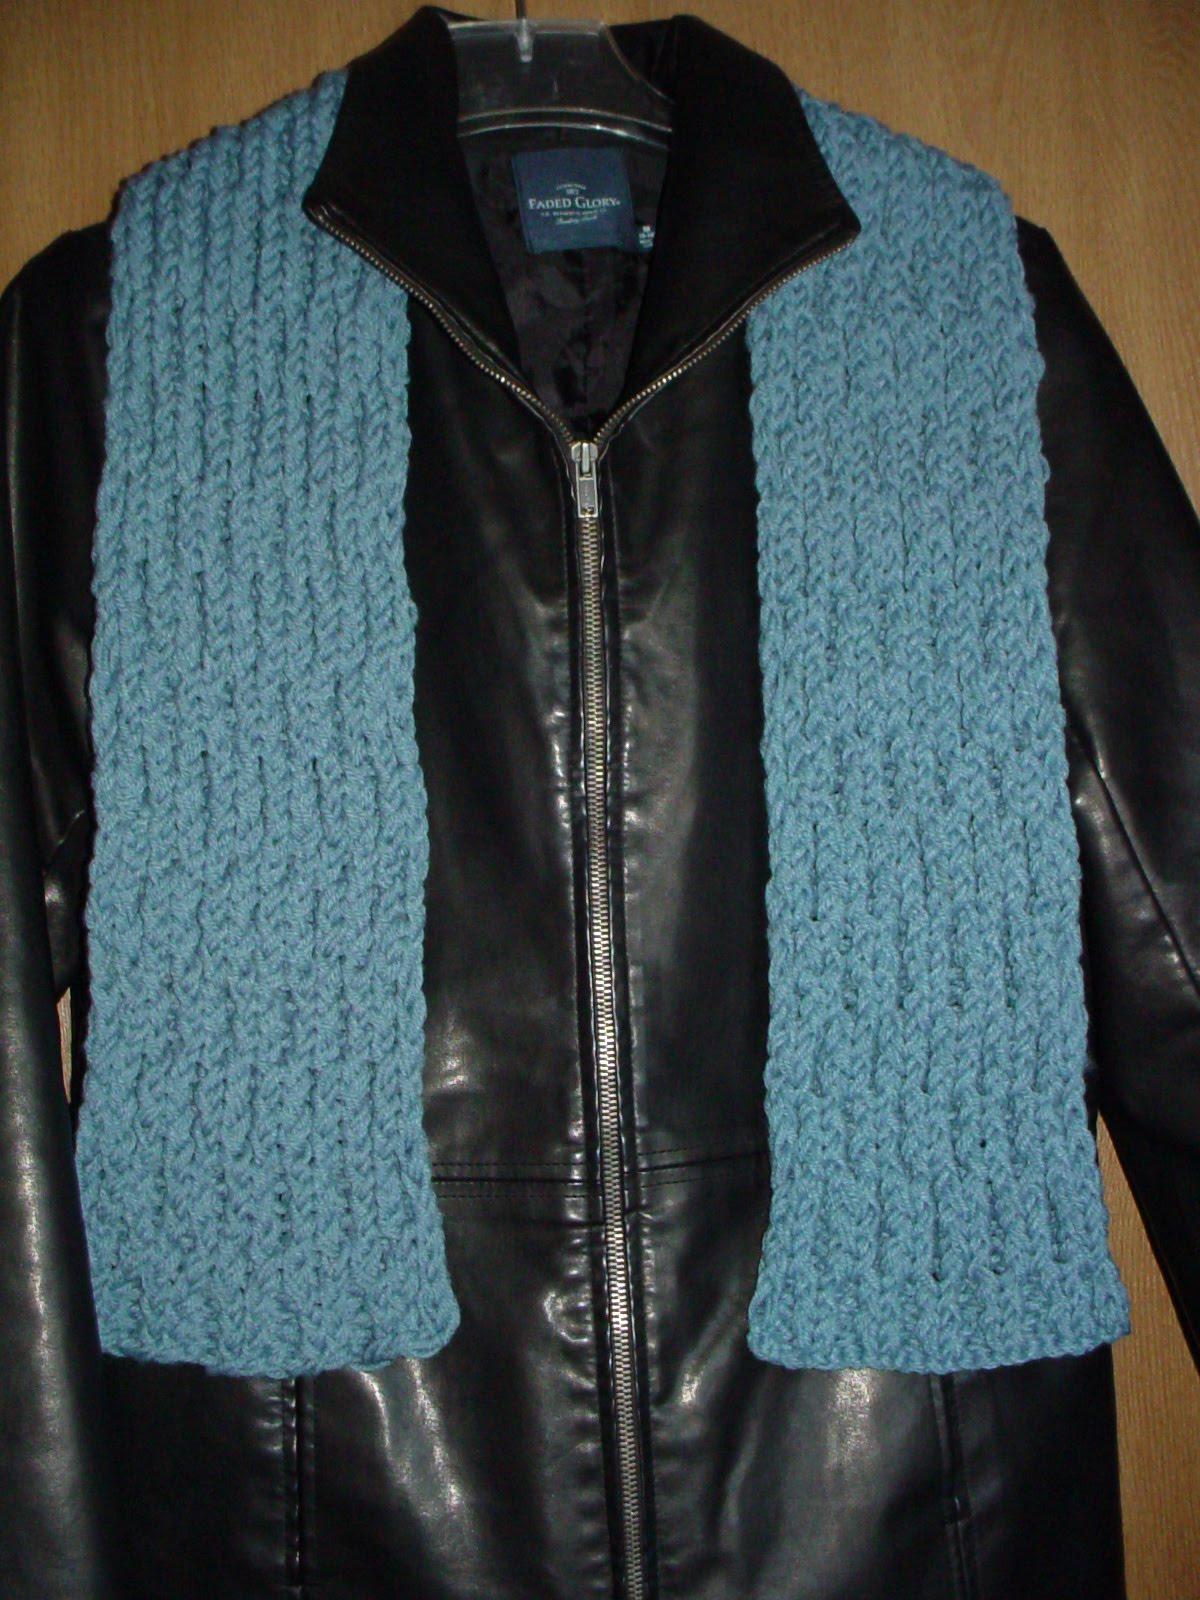 The Knifty Knitter: Blue scarf on the 9.5 inch long Knifty Knitter loom